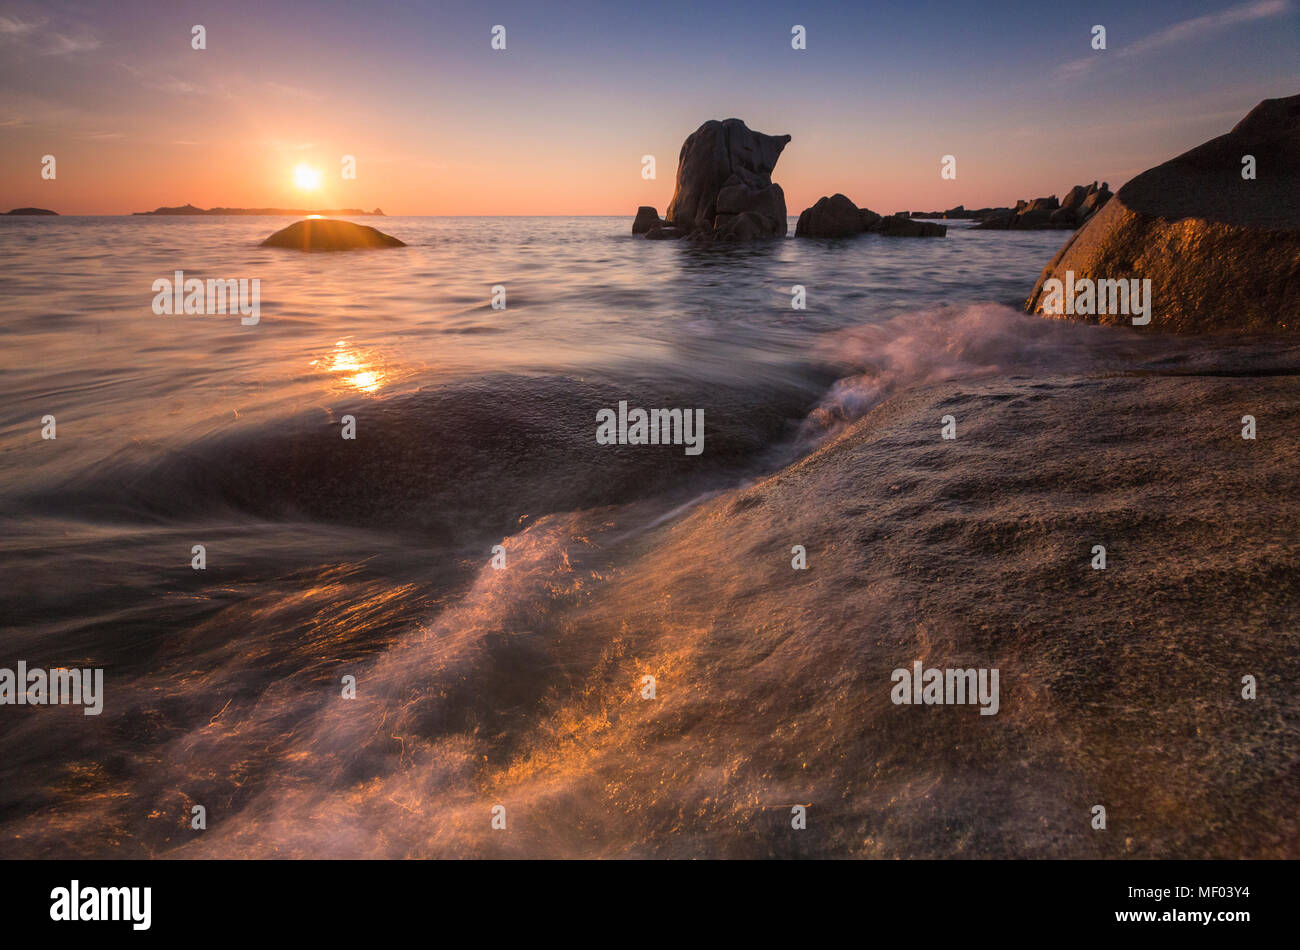 Waves crashing on cliffs under the fiery sky at sunrise Punta Molentis Villasimius Cagliari Sardinia Italy Europe - Stock Image